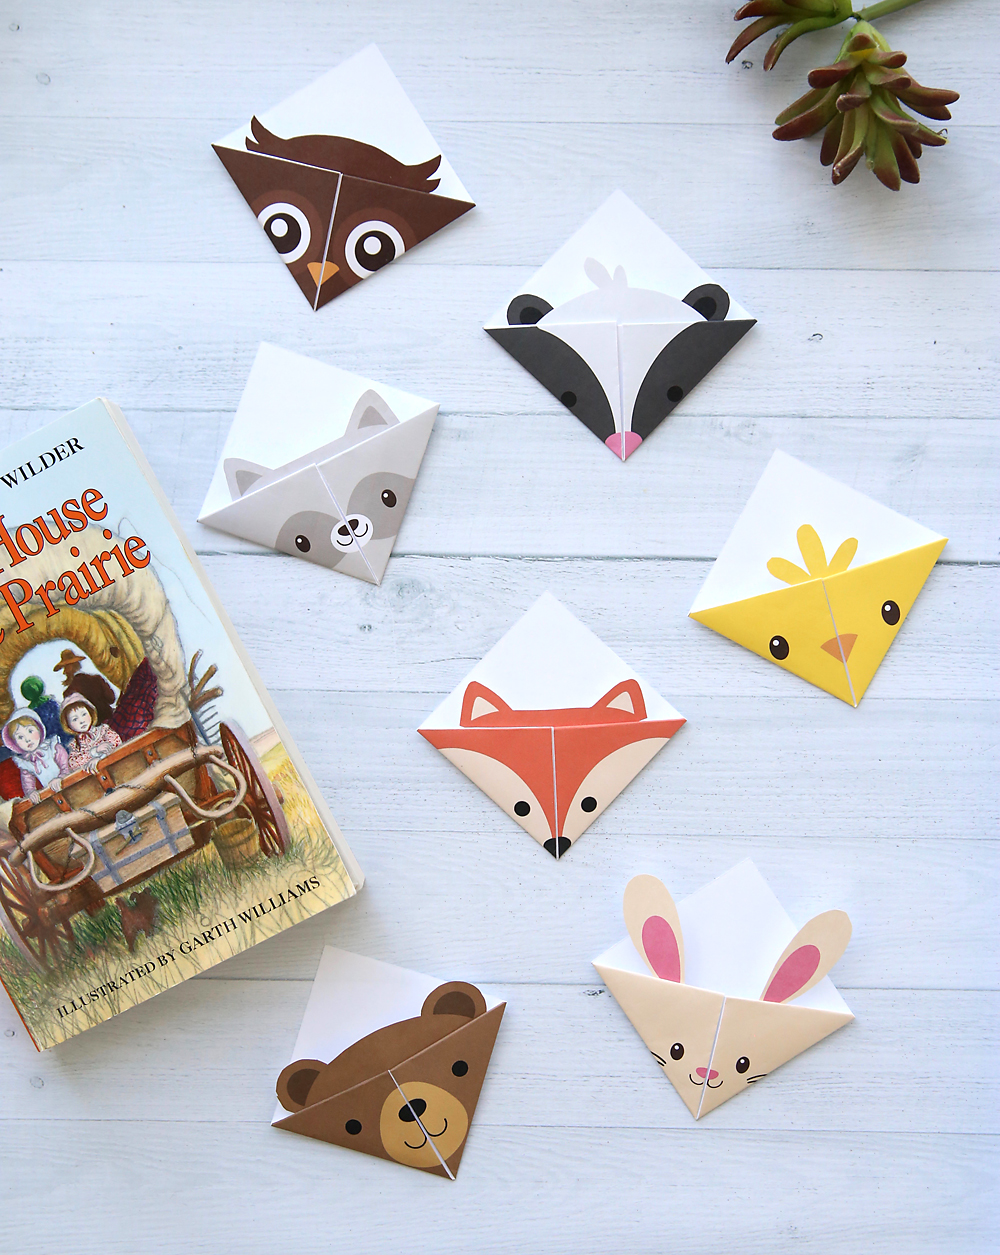 Diy Woodland Animals Origami Bookmarks Print Fold Its Always Cute Mouse Diagram Folded Seven Different Animal Bookmark Templates Just Cut